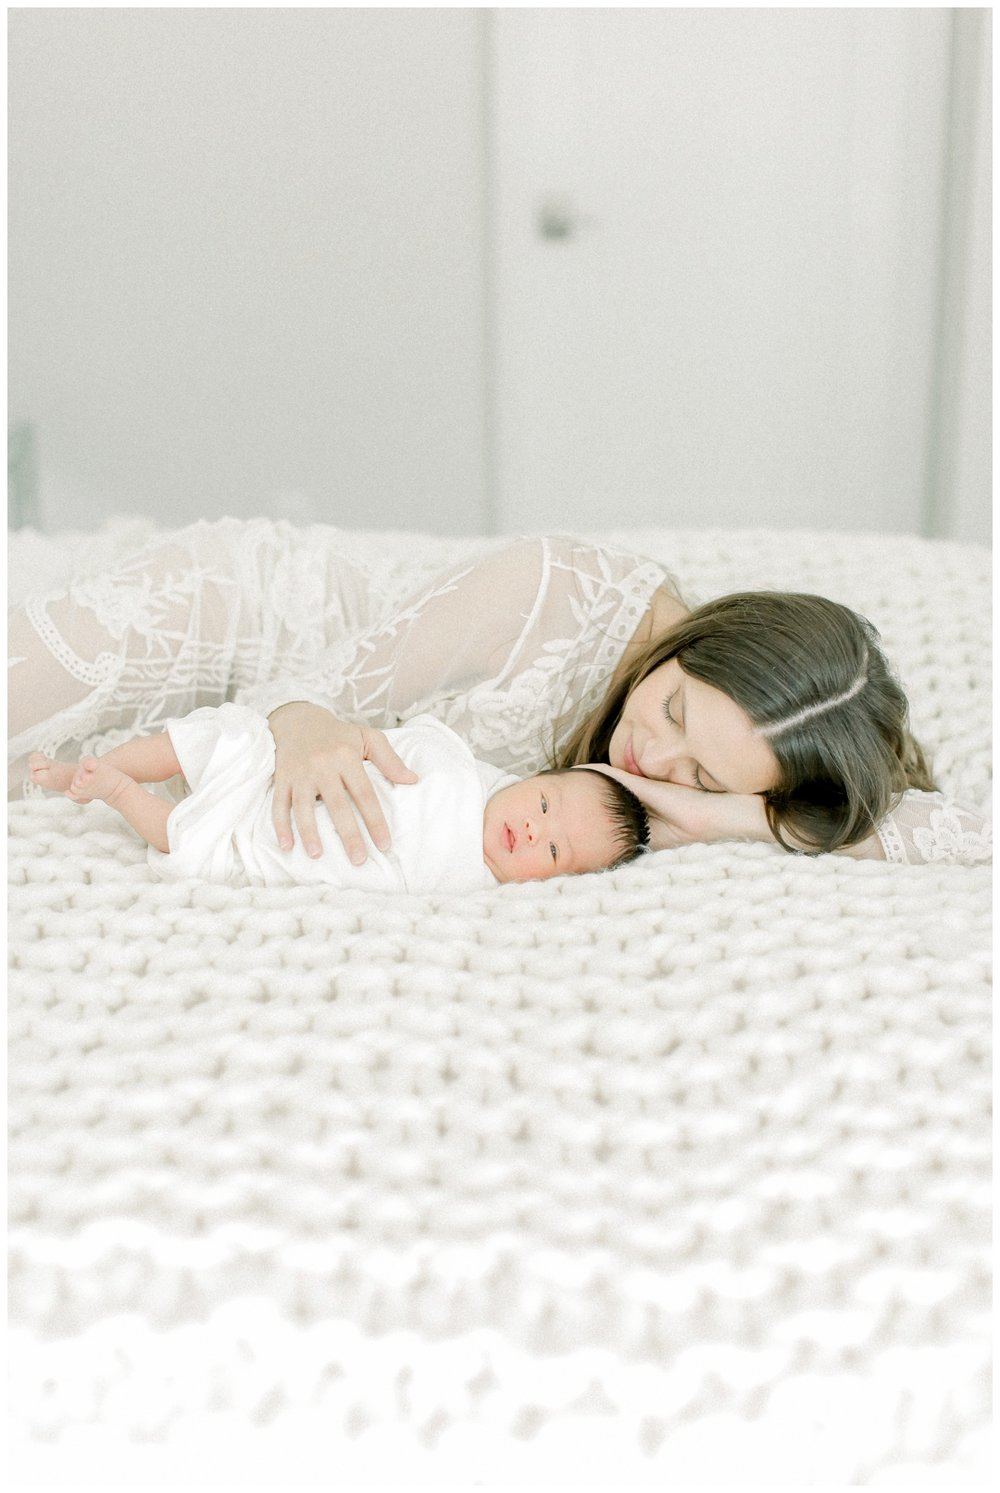 Newport_Beach_Lifestyle_in-Home_Photographer_Newport_Beach_Newborn_Photography_Orange_County_Newborn_Photographer_Cori_Kleckner_Photography_Orange_County_in-home_Photography__2026.jpg